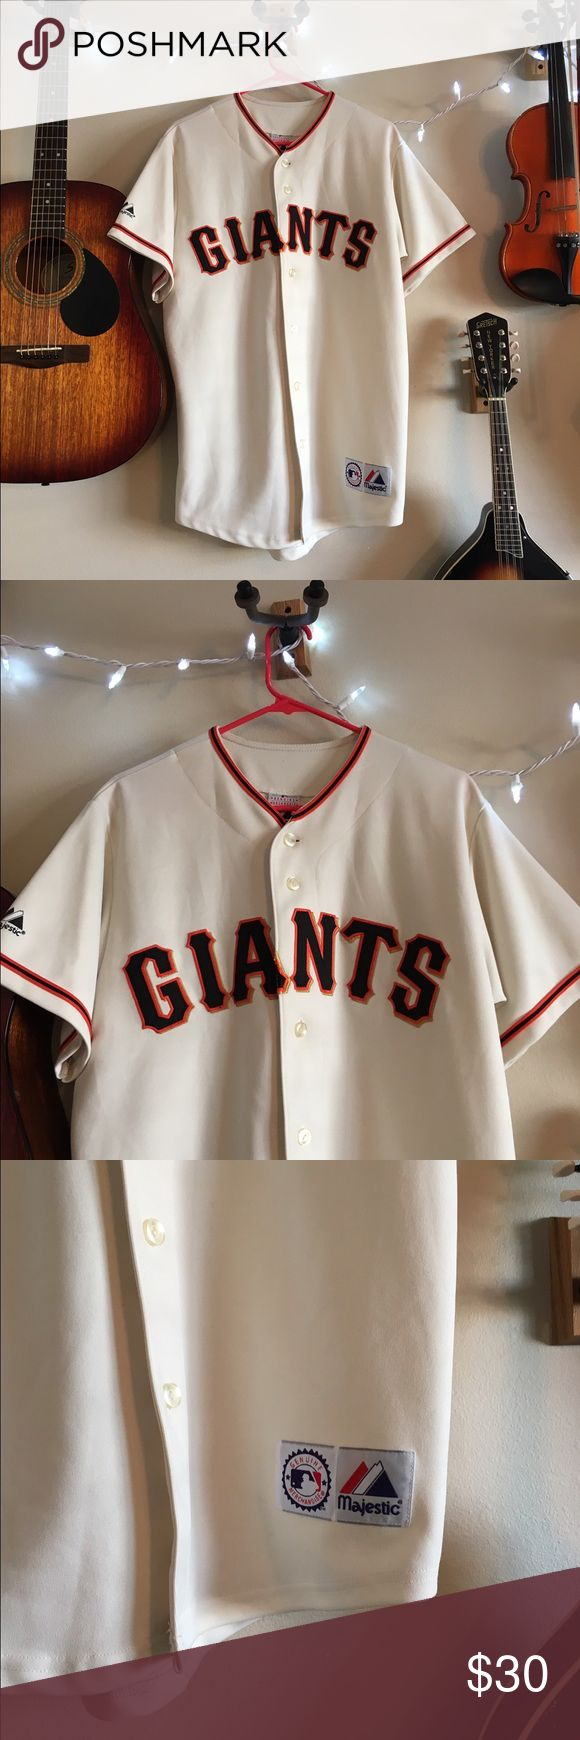 SF Giants Button Up Jersey Men's size medium- I wore this as an oversized top/dress with leggings. Official MLB merchandise. Shirts